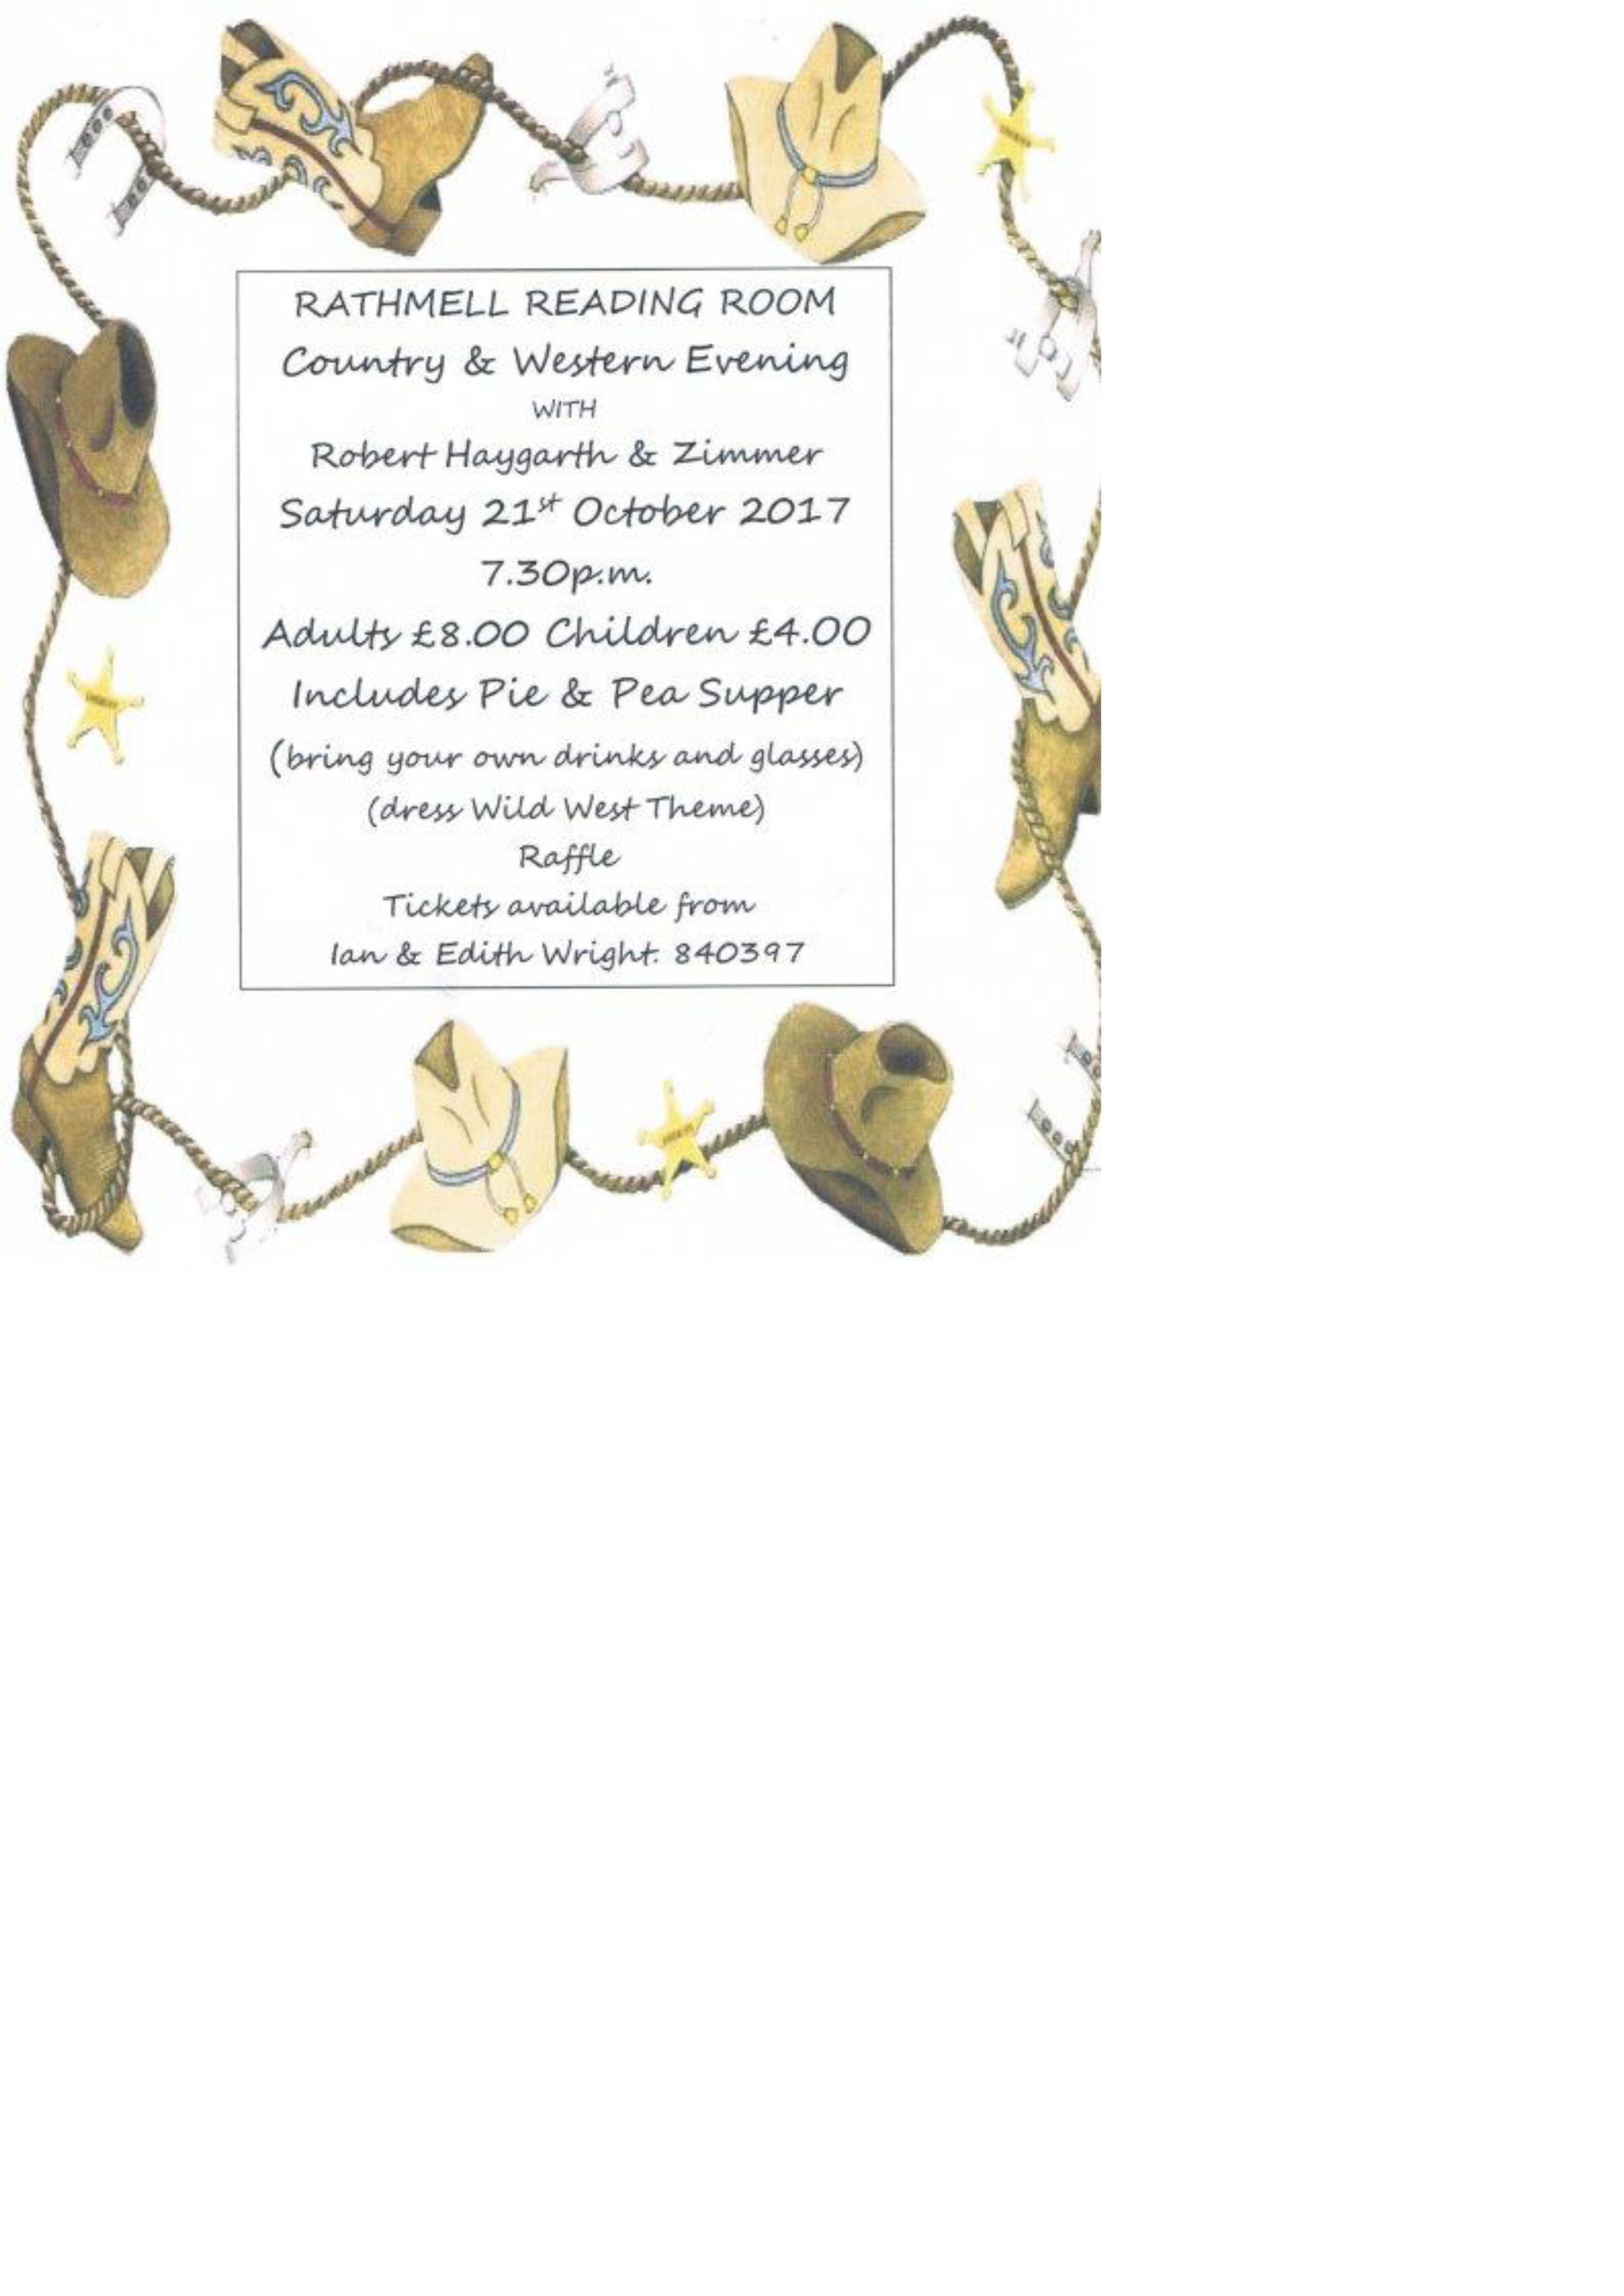 Country & Western Evening - Rathmell Village